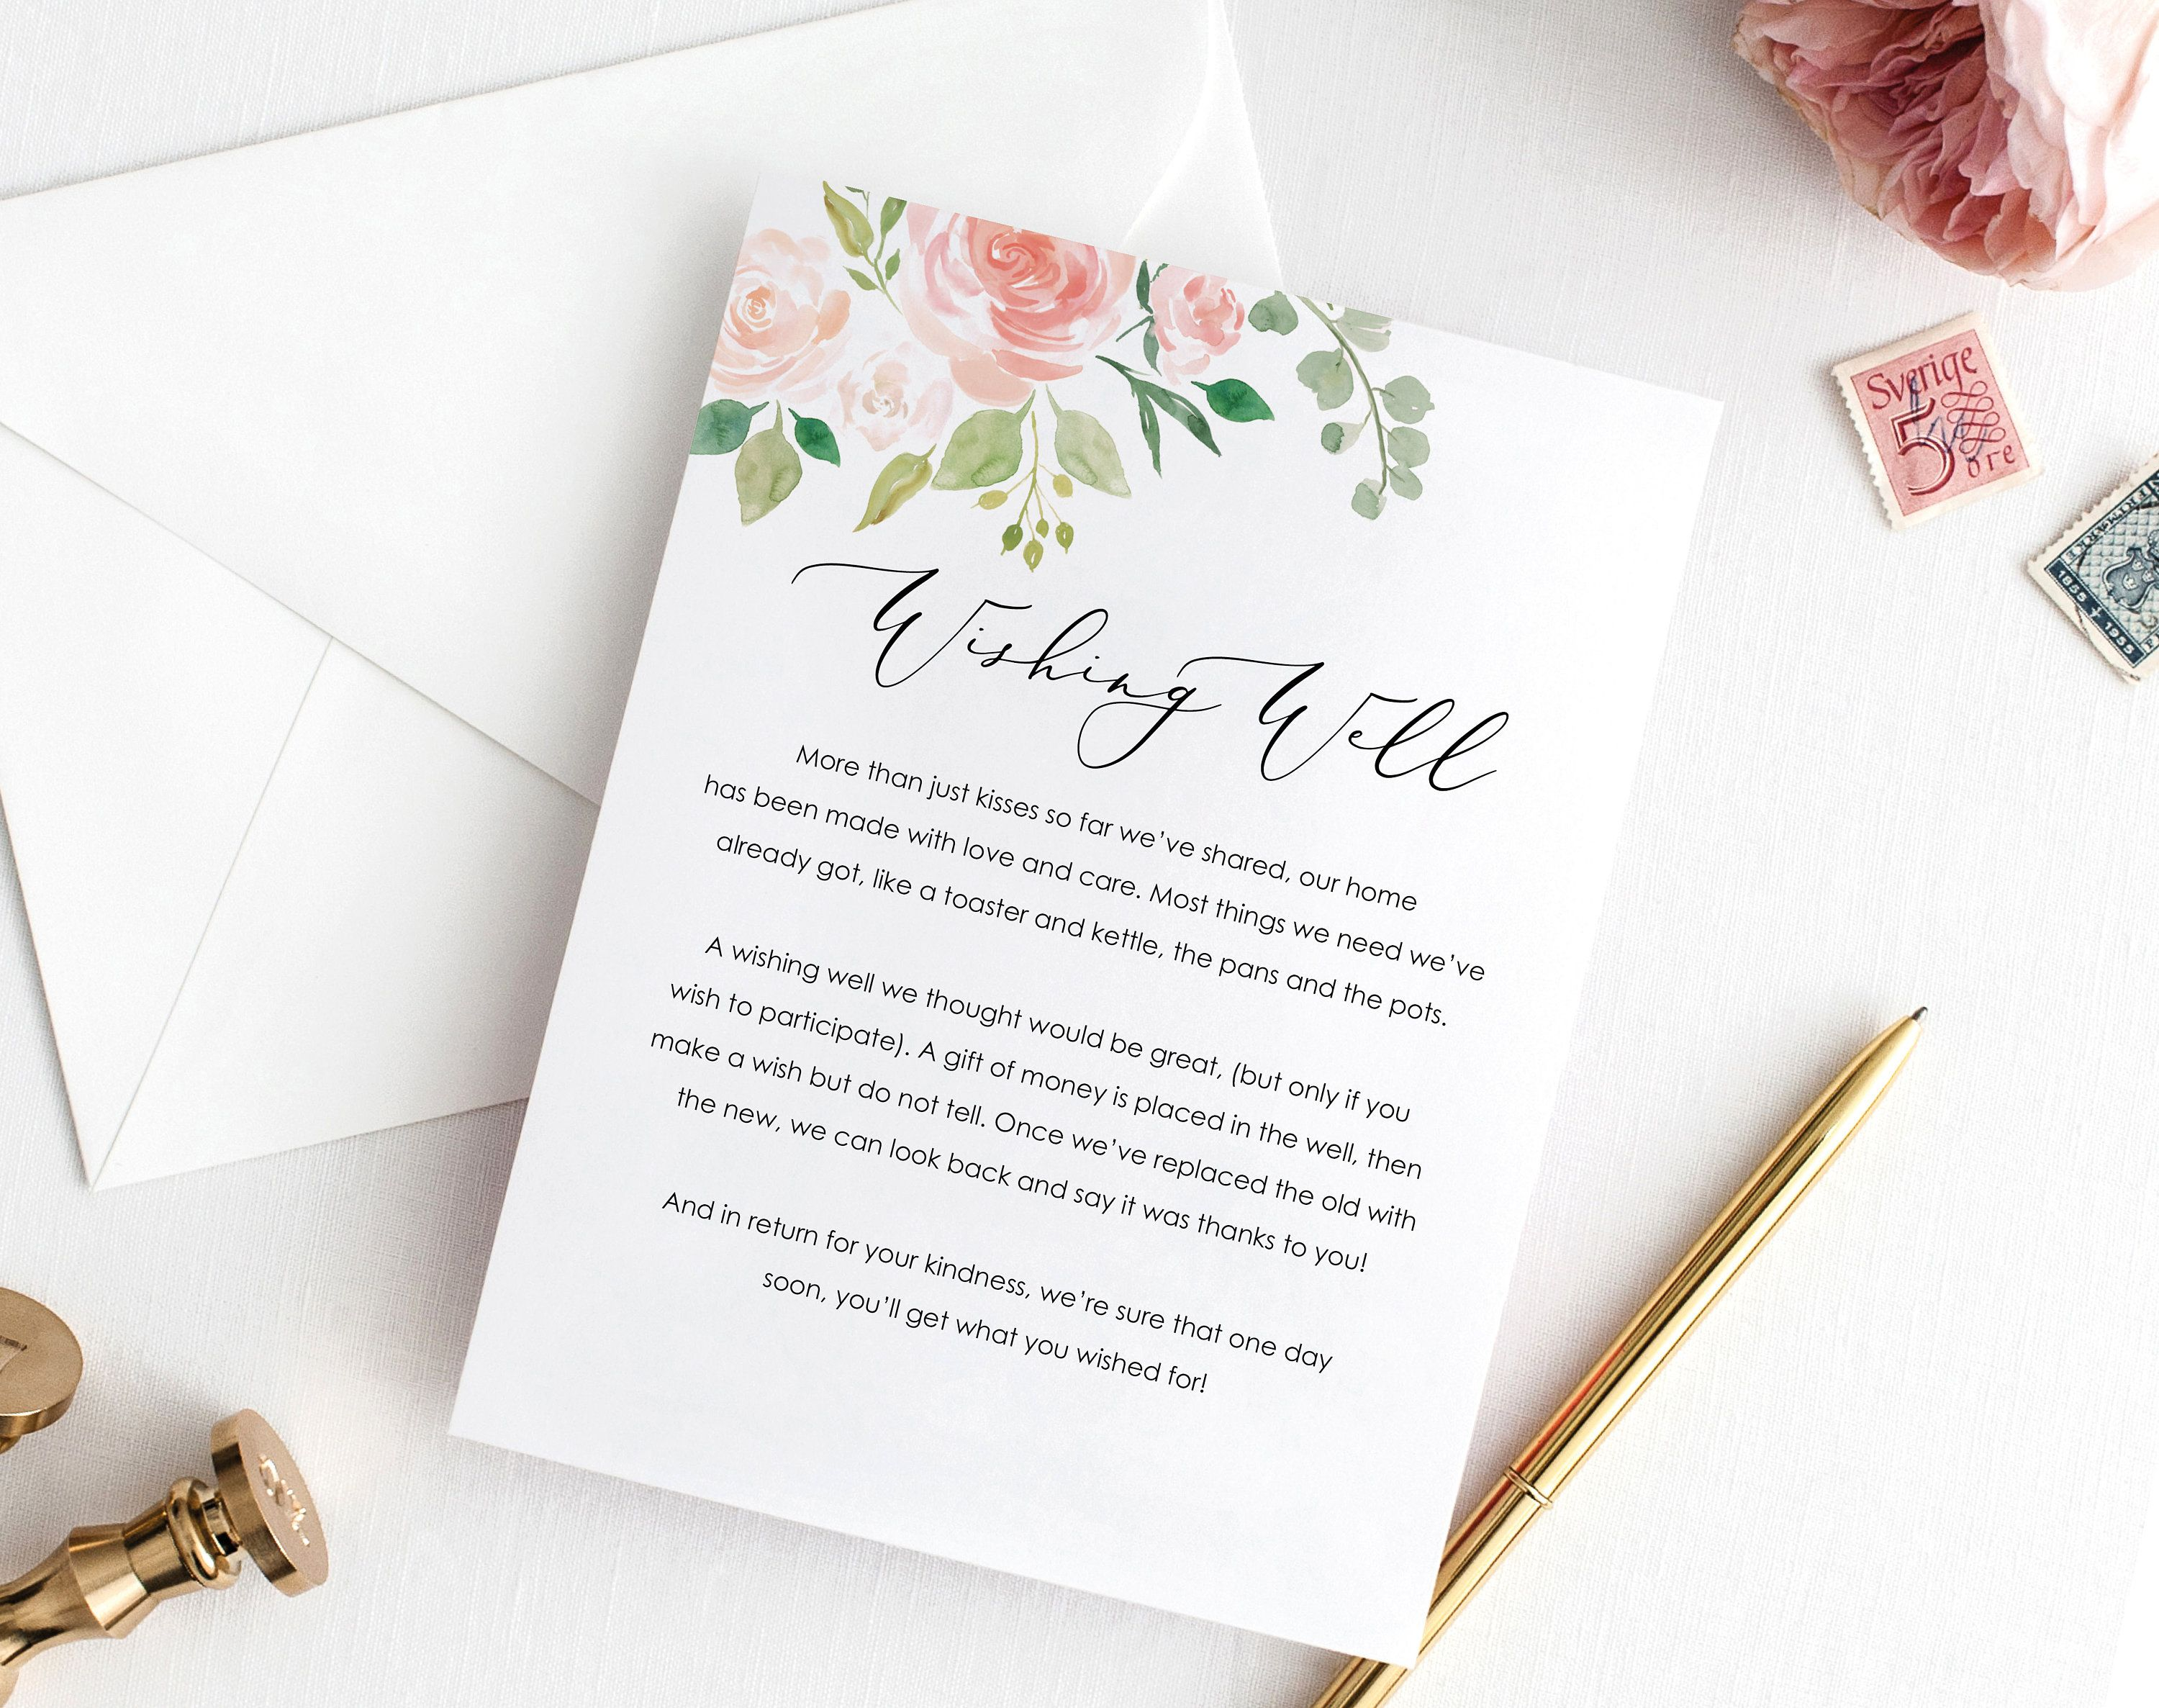 This Beautiful Floral Wedding Wishing Well Card Is The Perfect Way To Respectfully Re Wedding Invitations Printable Templates Wedding Cards Wedding Invitations